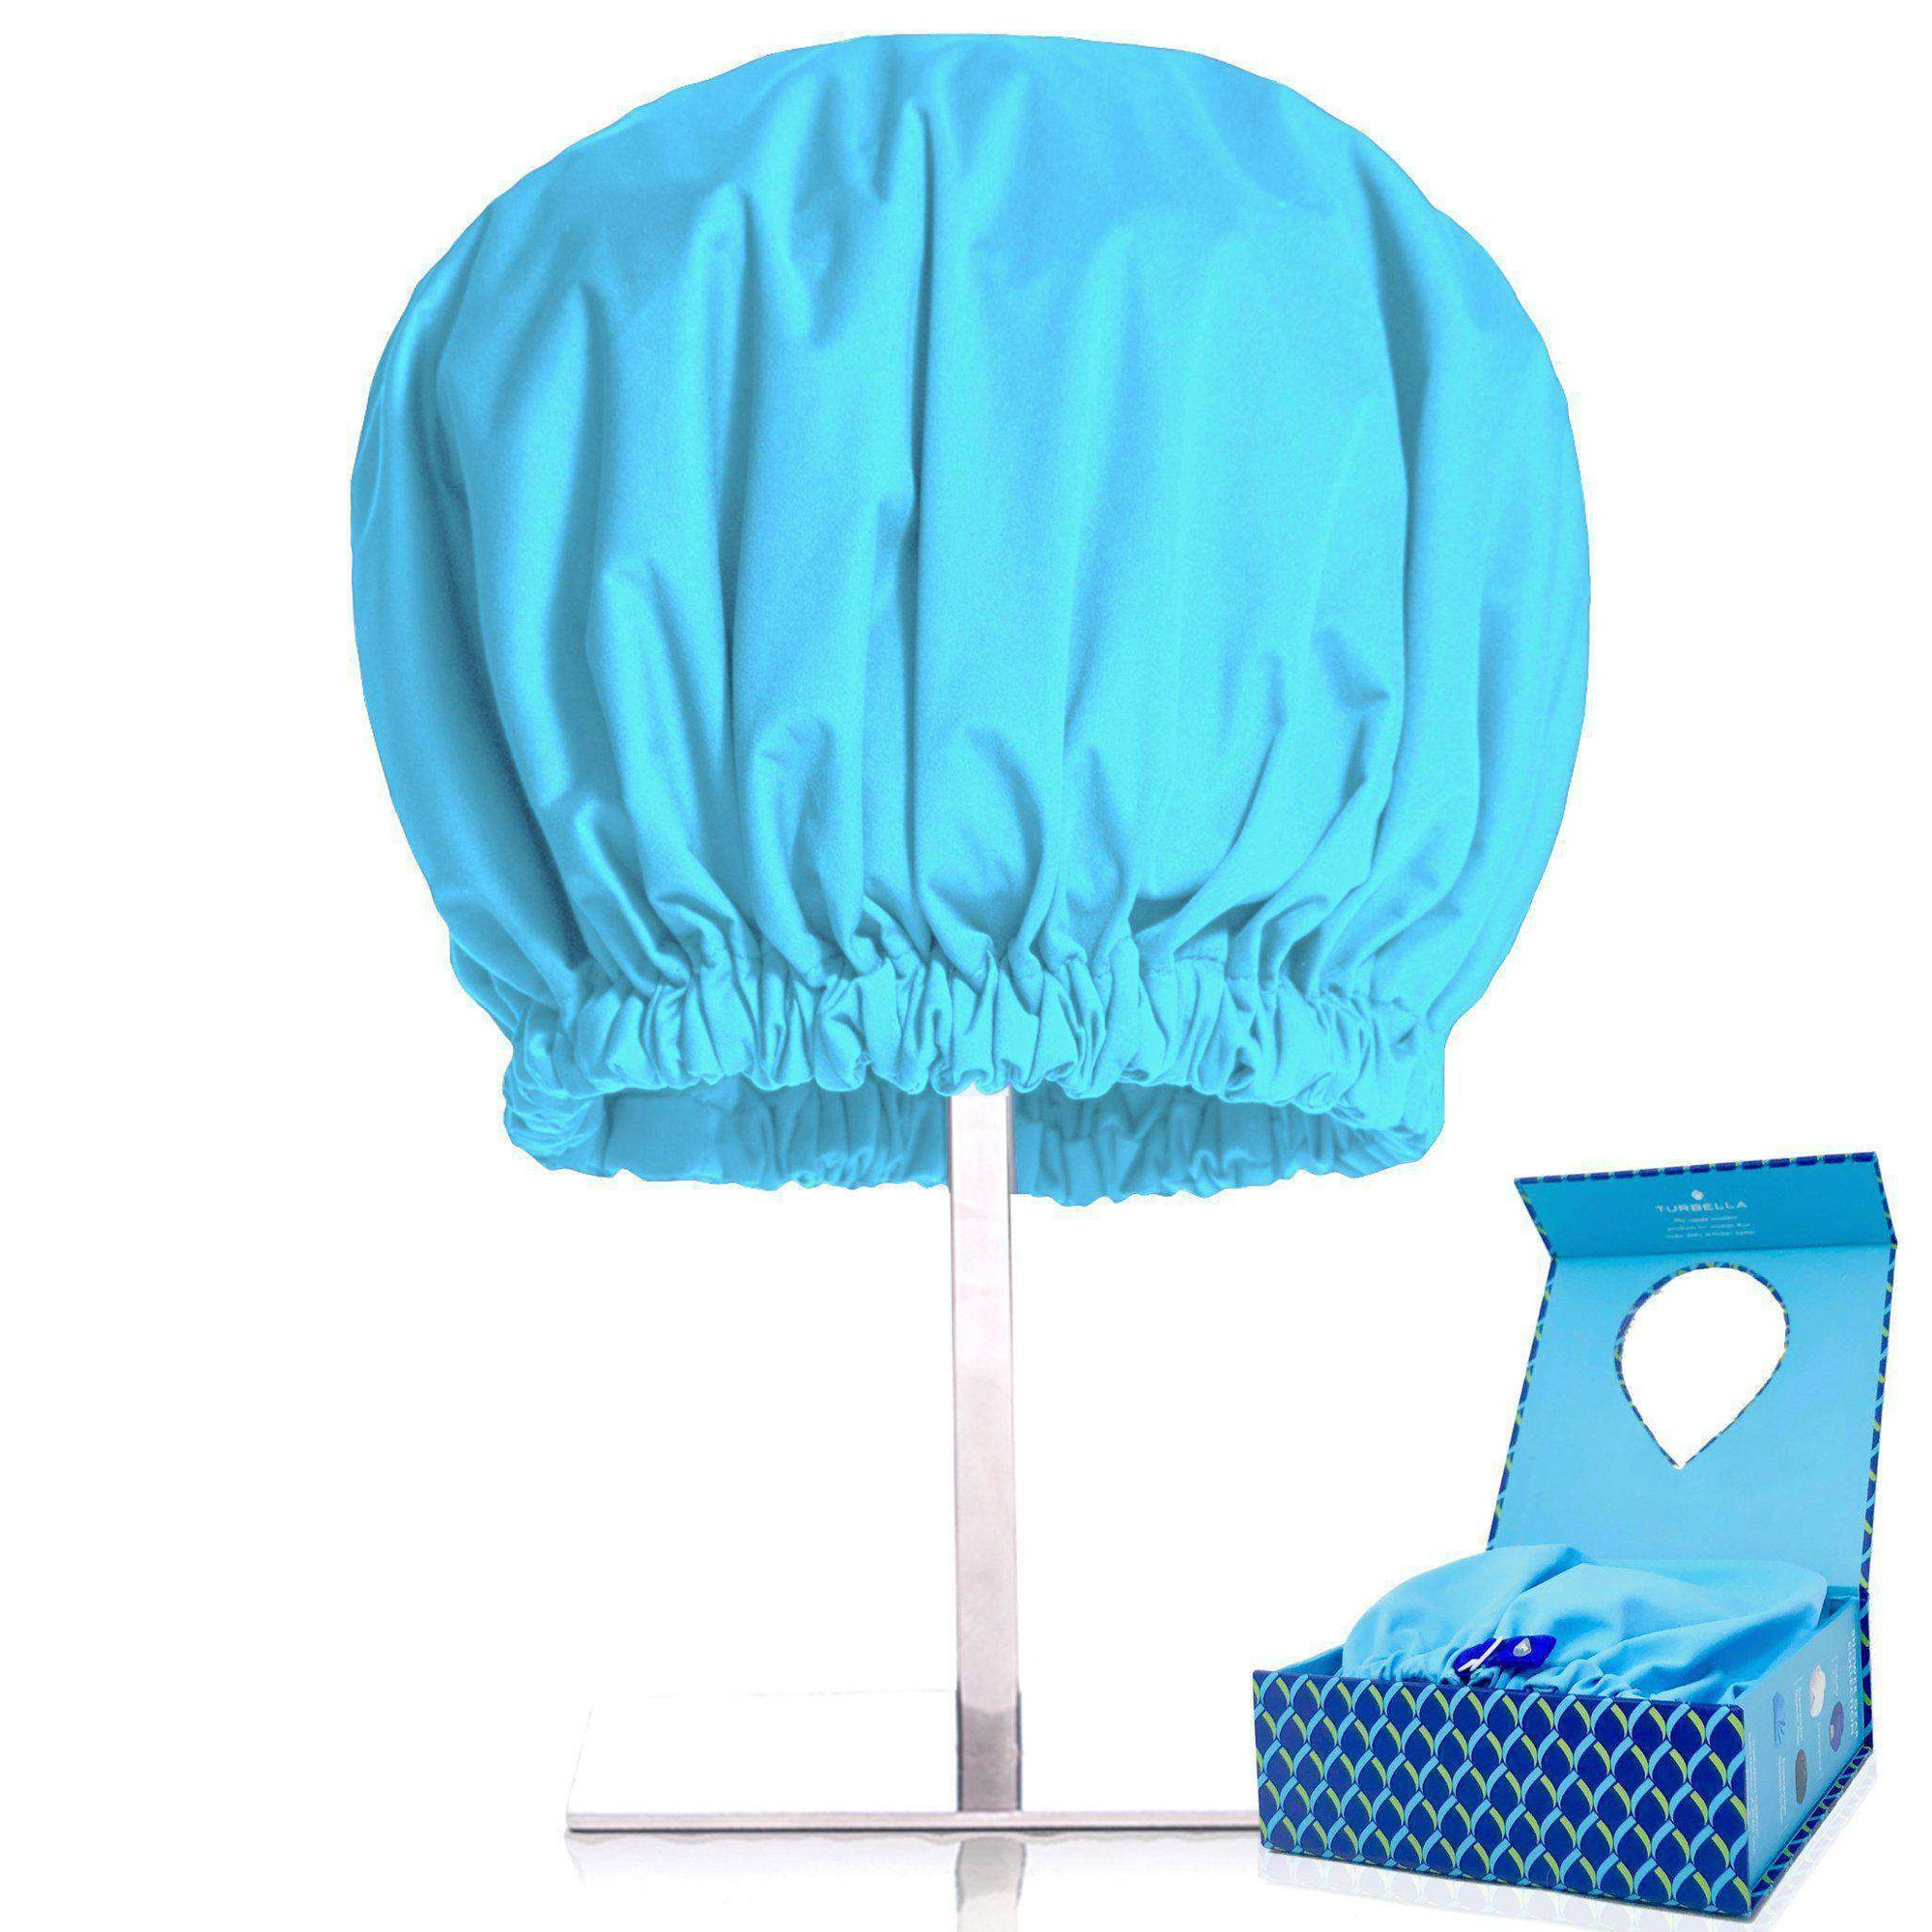 XXL jumbo shower cap for very long hair extensions braids dreadlocks African American hair textures free gift box